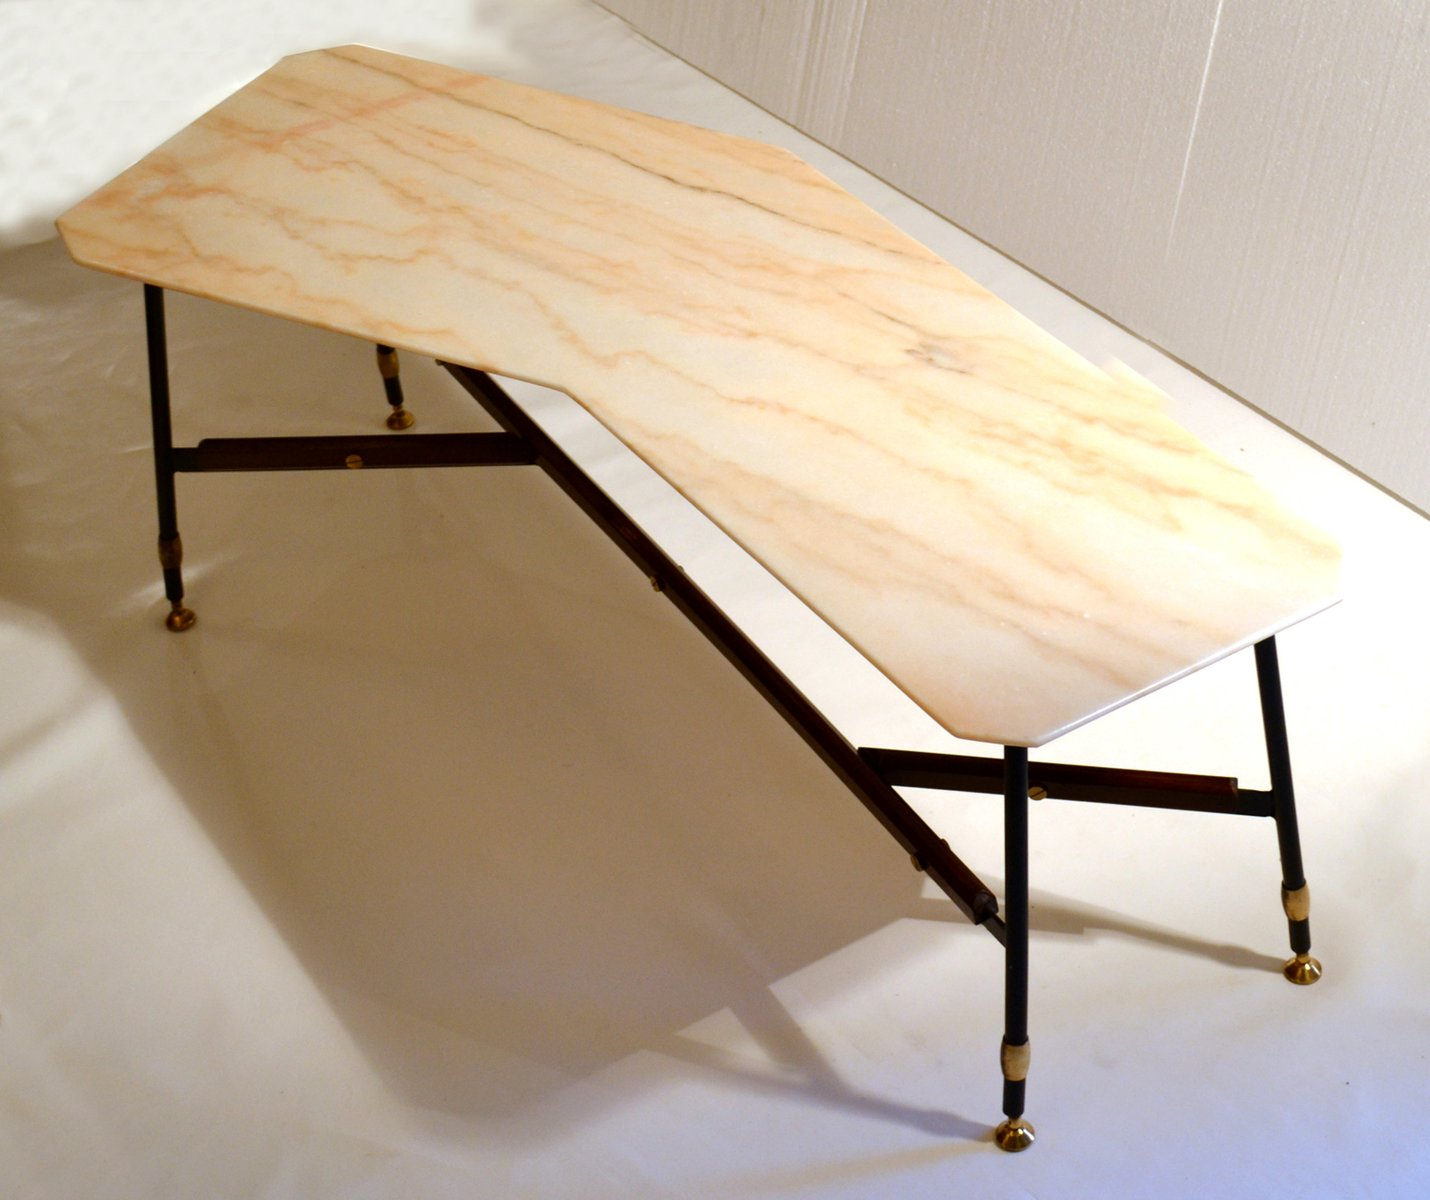 Marble Coffee Table Australia: Italian Free-Formed Marble Top Coffee Table, 1950s For